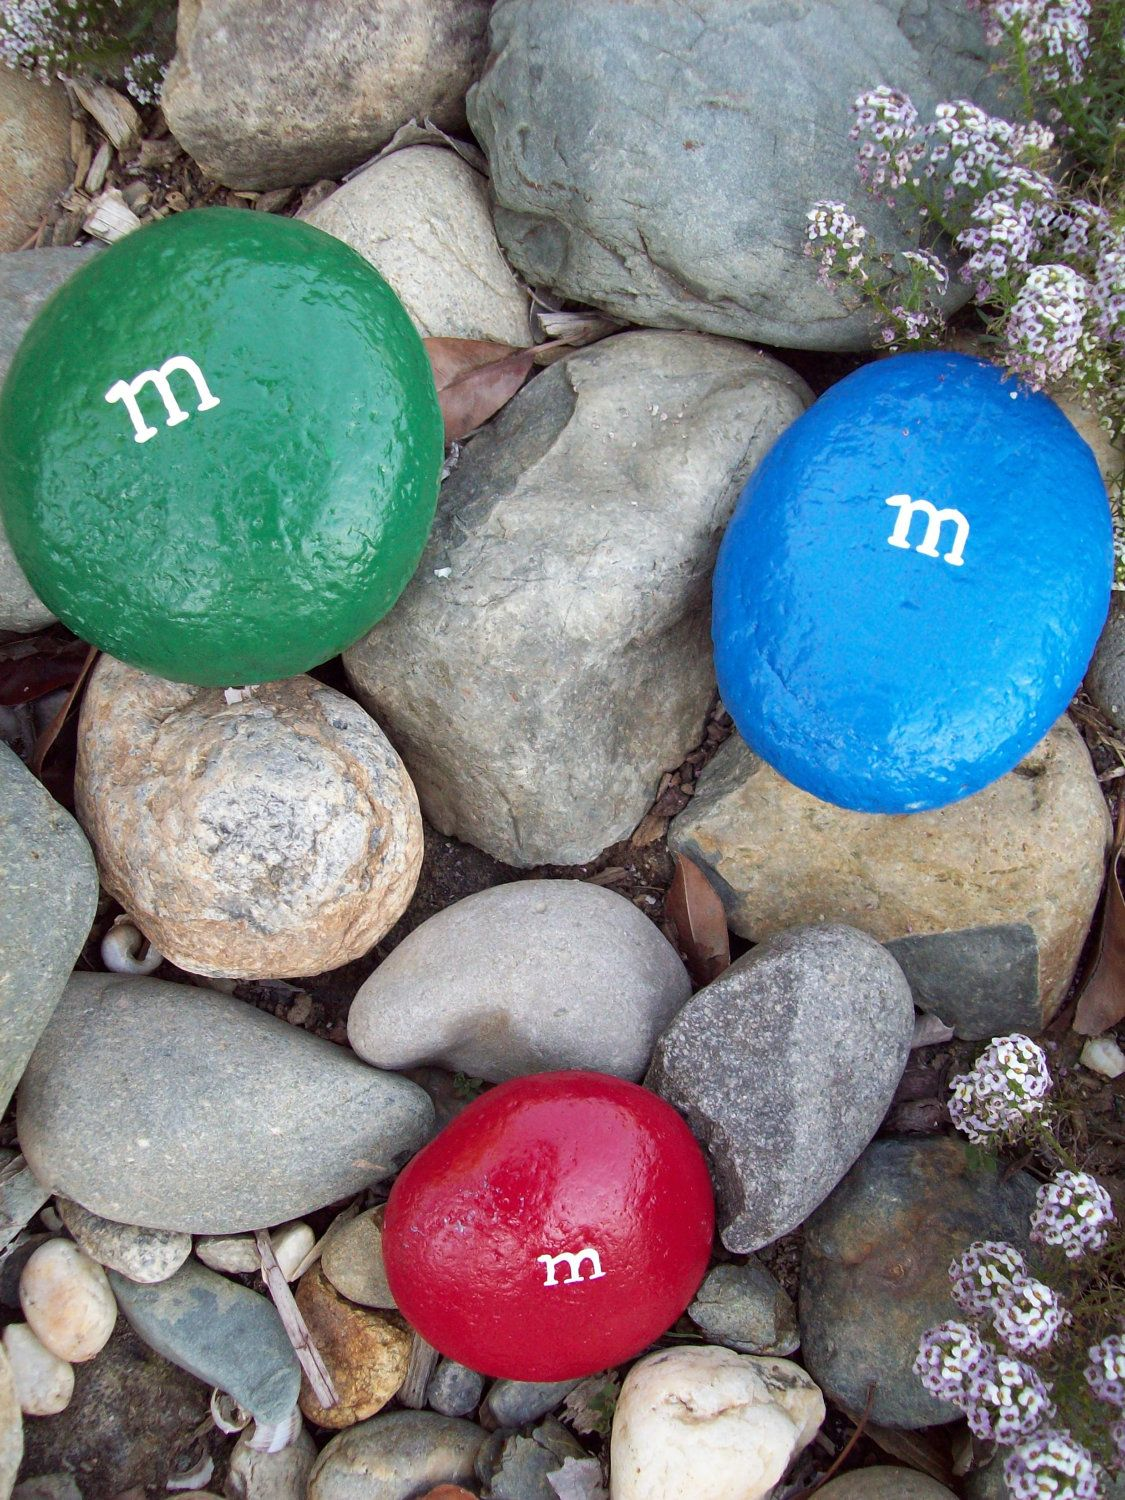 M M Rock Garden Or Use Them Inside For Doorstops